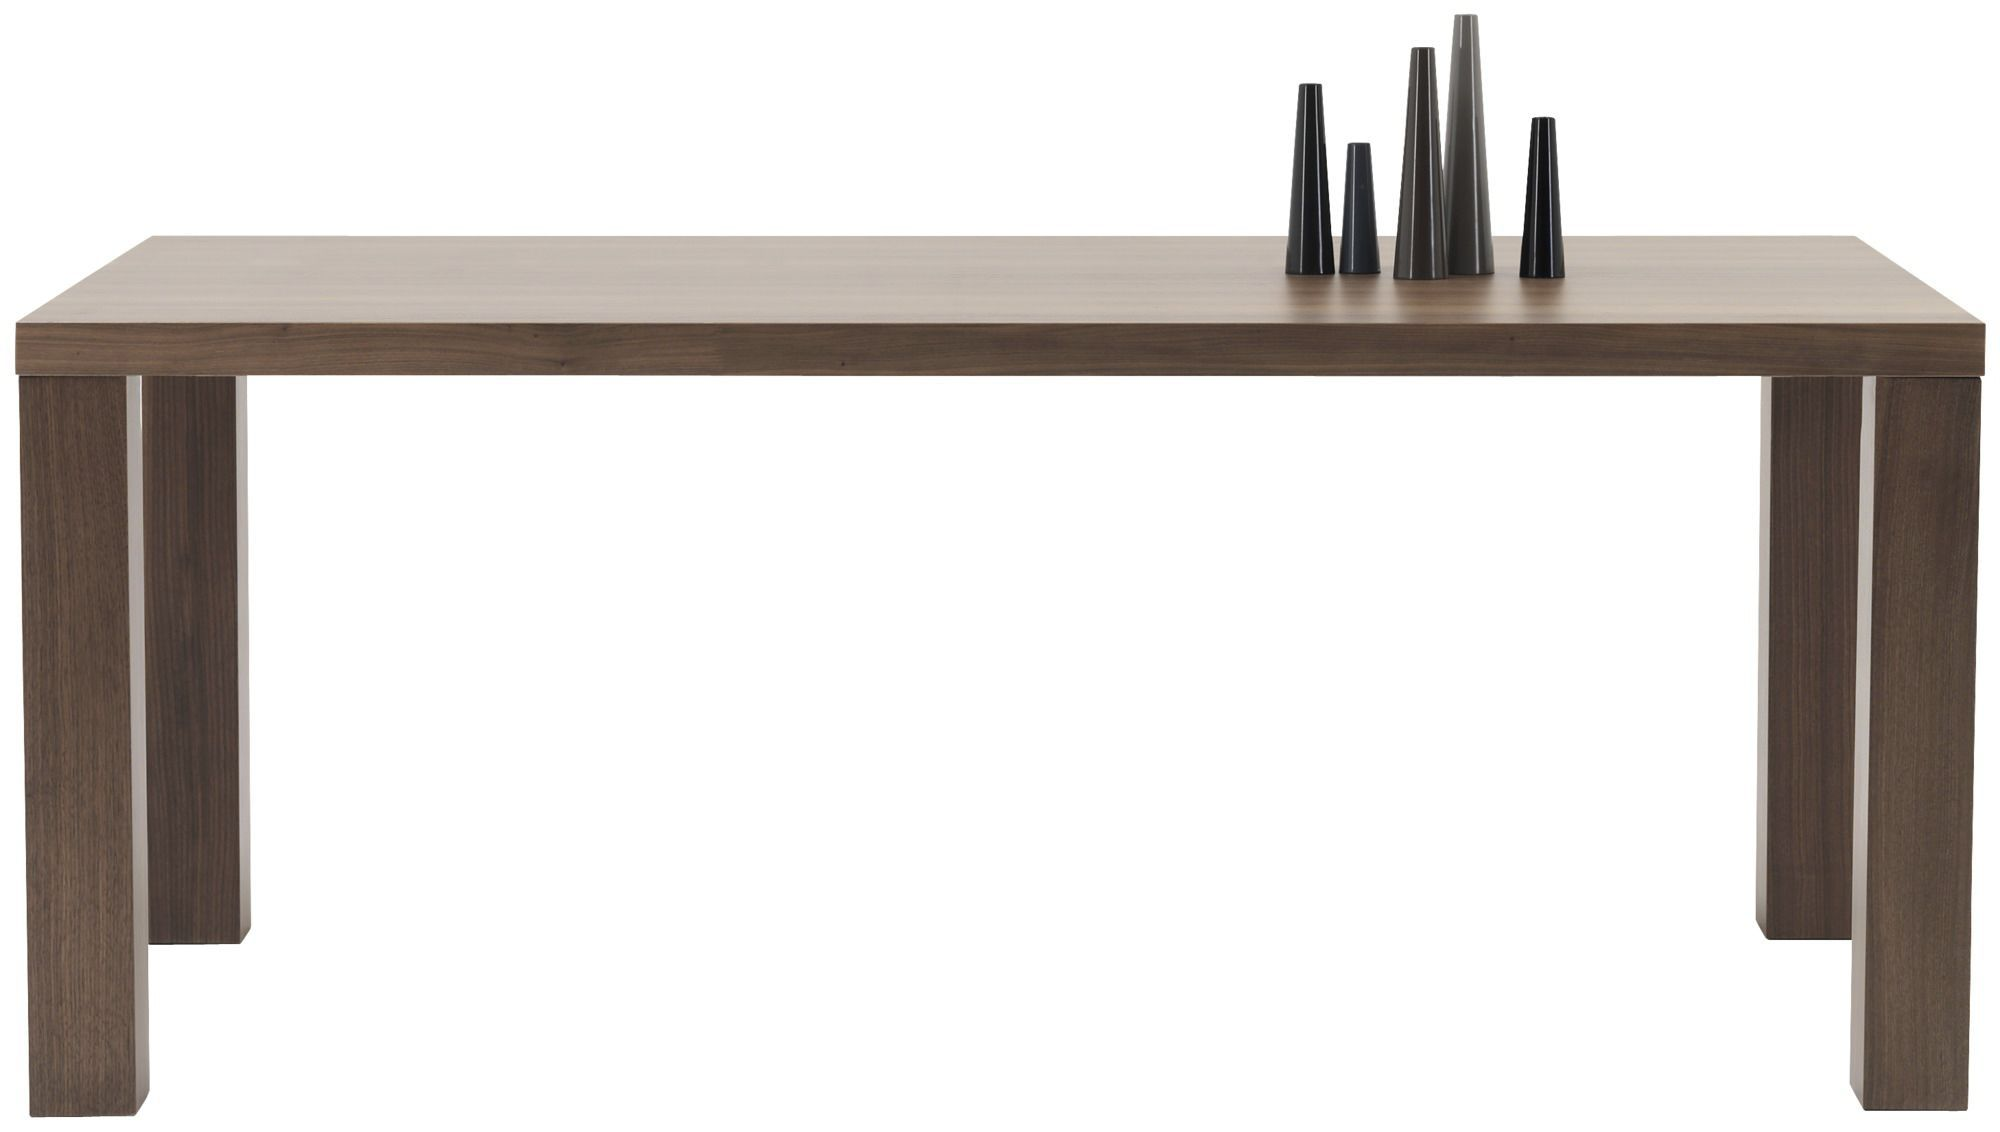 rectangulaire lugo boconcept table manger contemporaine en mdf en acier rectangulaire lugo - Bo Concept Table Basse